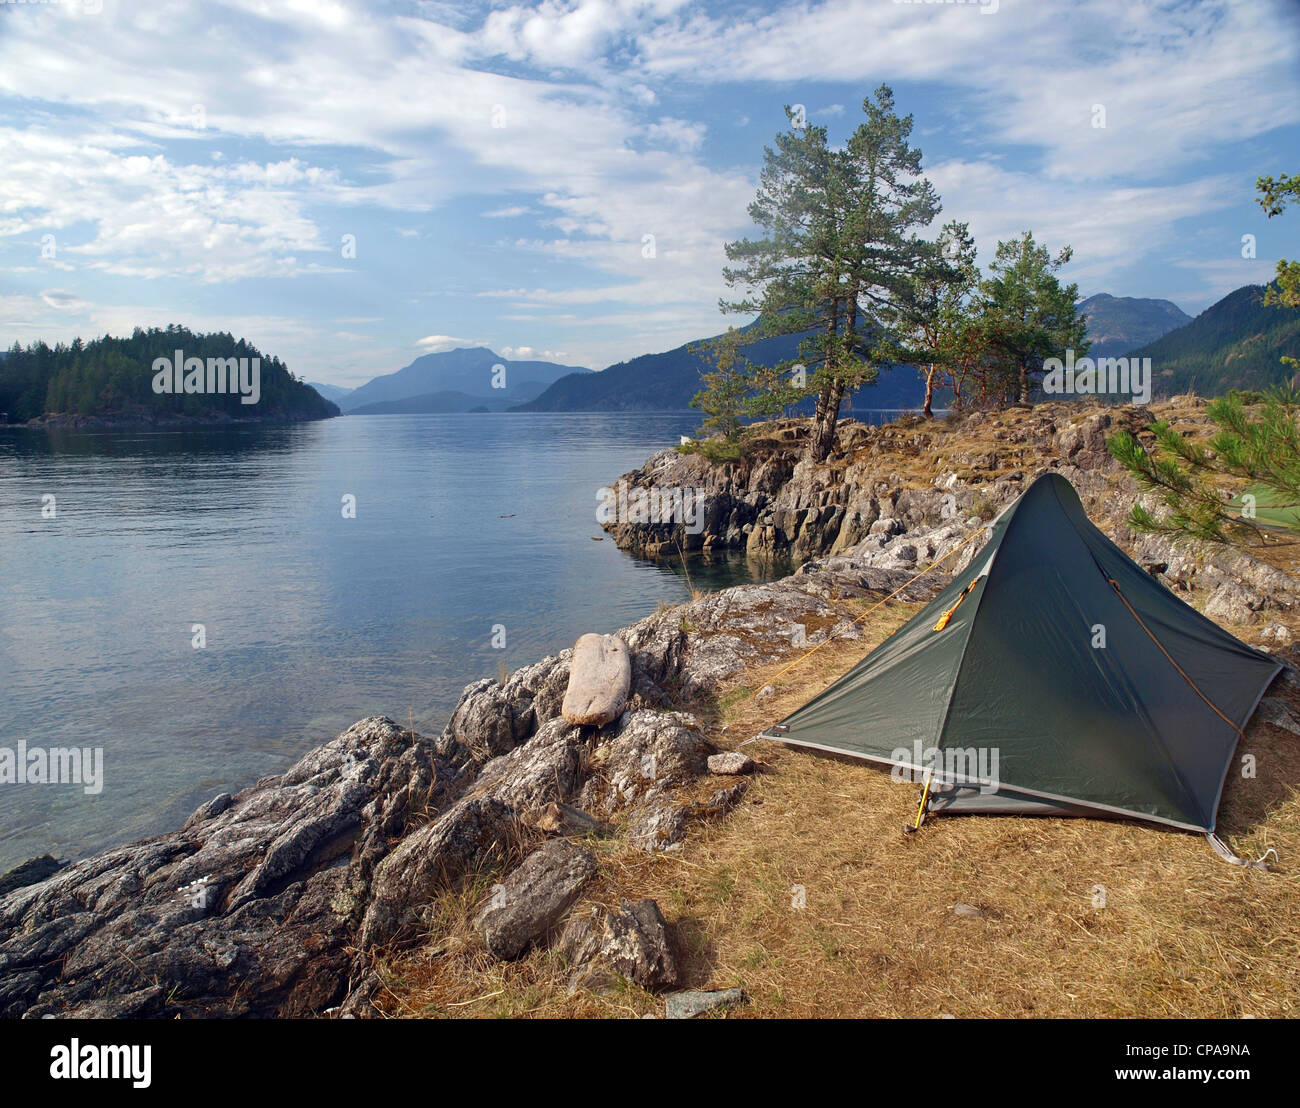 sea kayaker's campsite in British Columbia, Canada - Stock Image